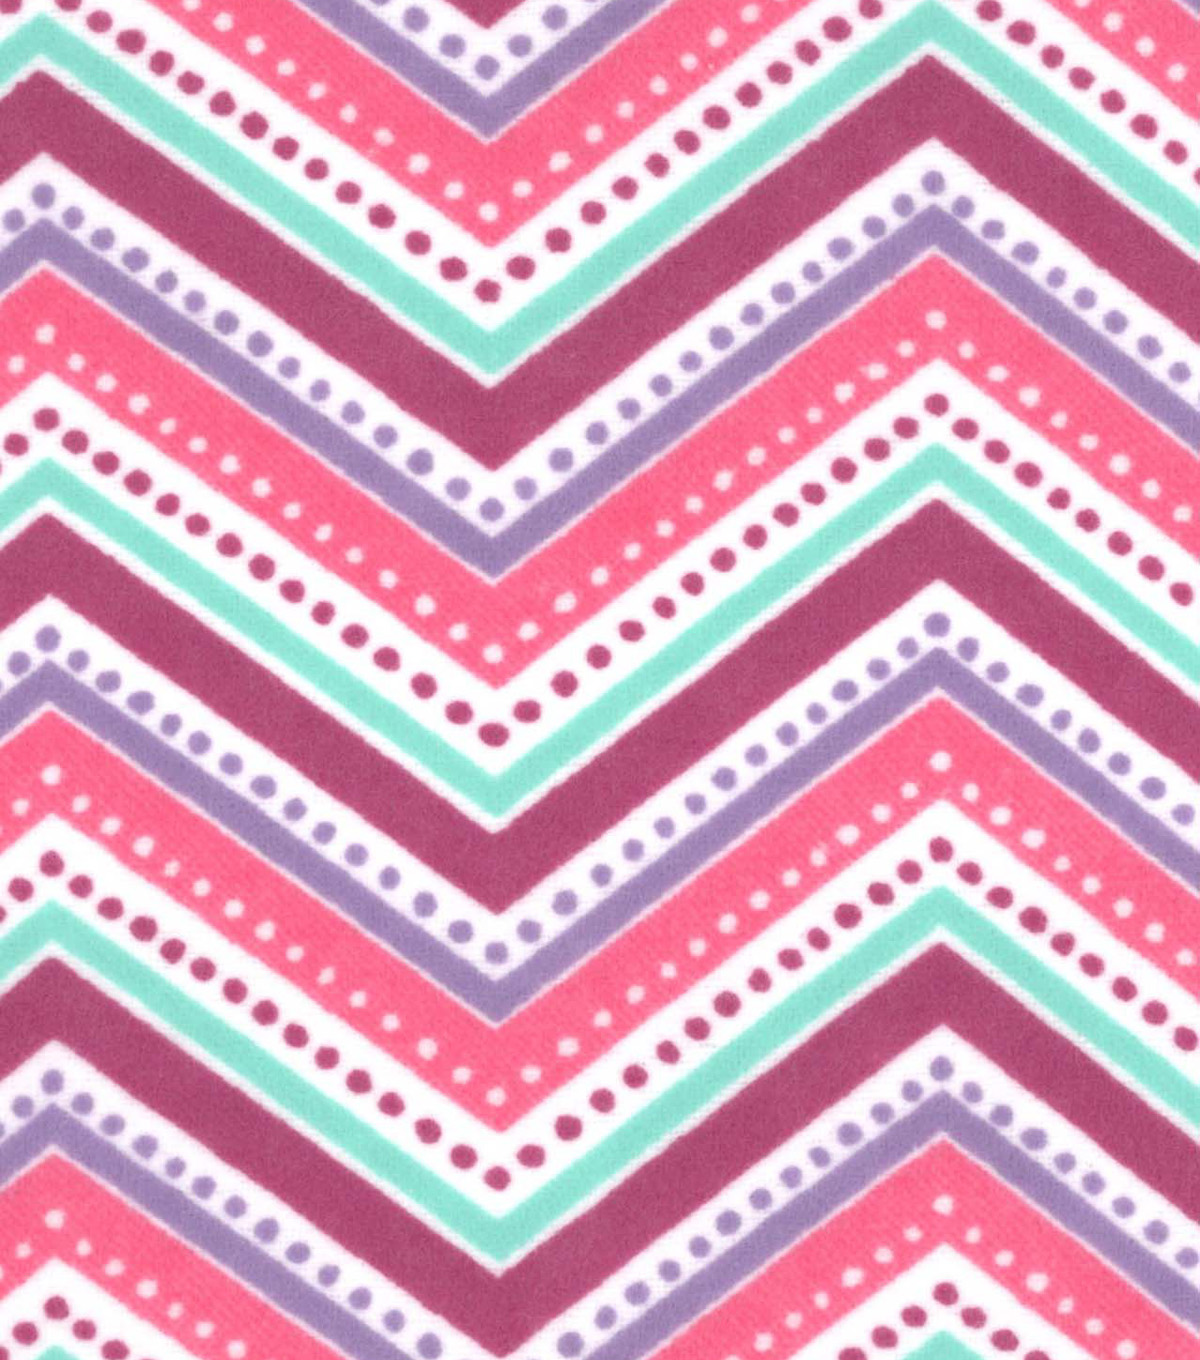 Snuggle Flannel Fabric -Gypsy Dotted Chevron